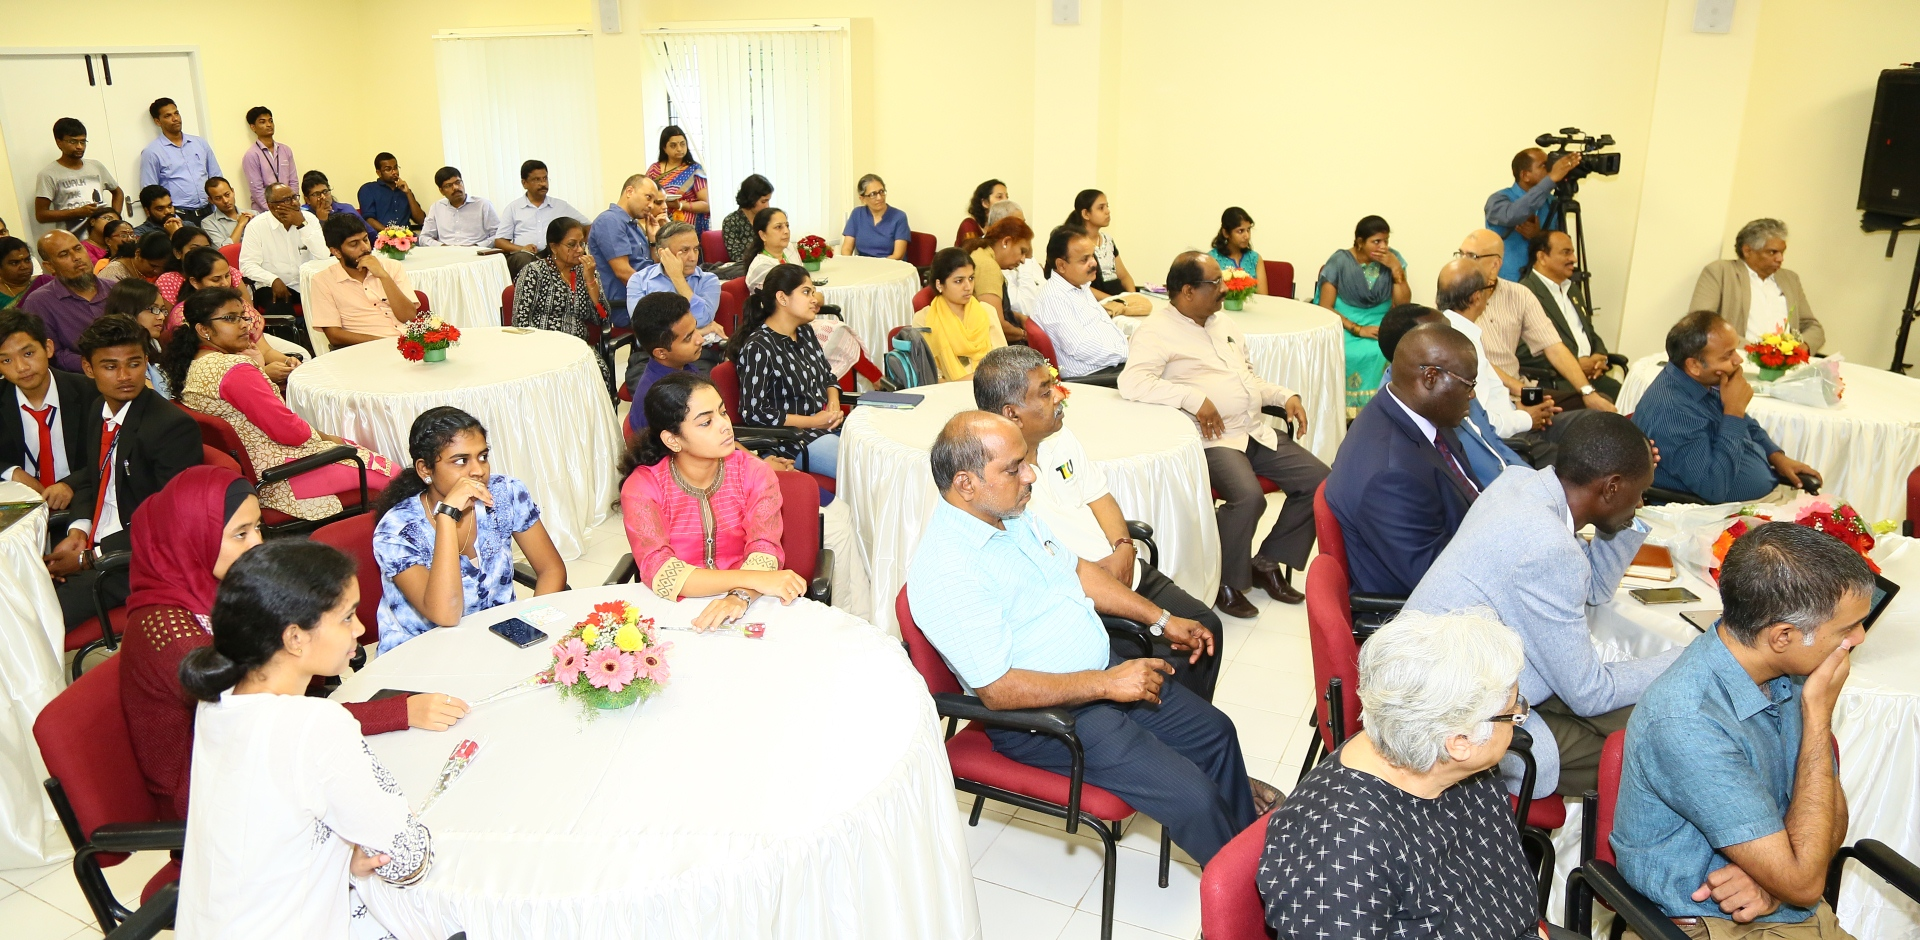 TDU Inaugural Lectures were held on 4th September 2017.